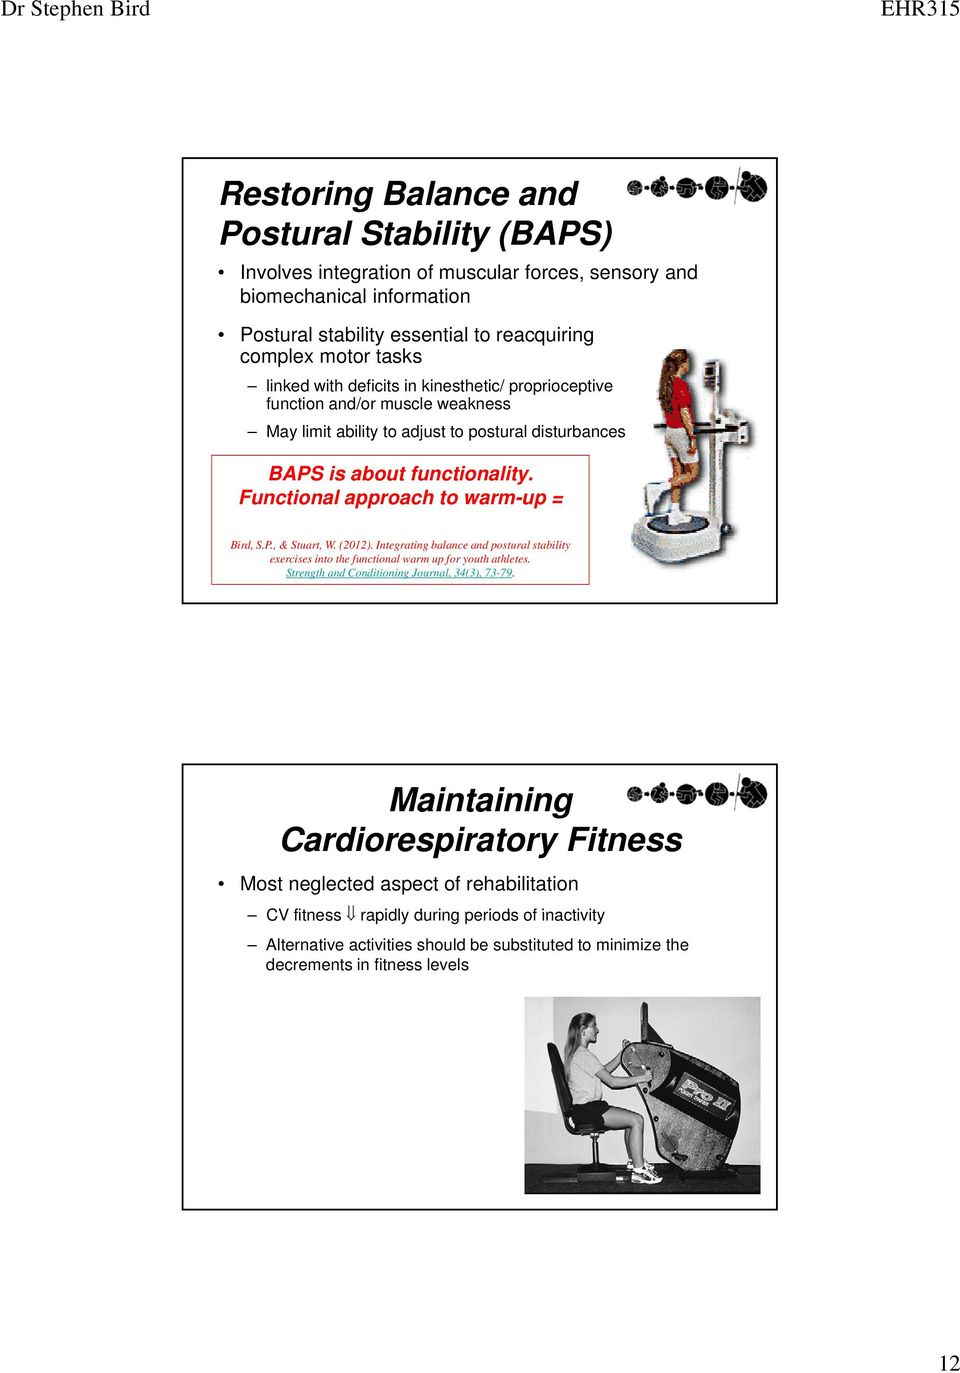 Functional approach to warm-up = Bird, S.P., & Stuart, W. (2012). Integrating balance and postural stability exercises into the functional warm up for youth athletes.